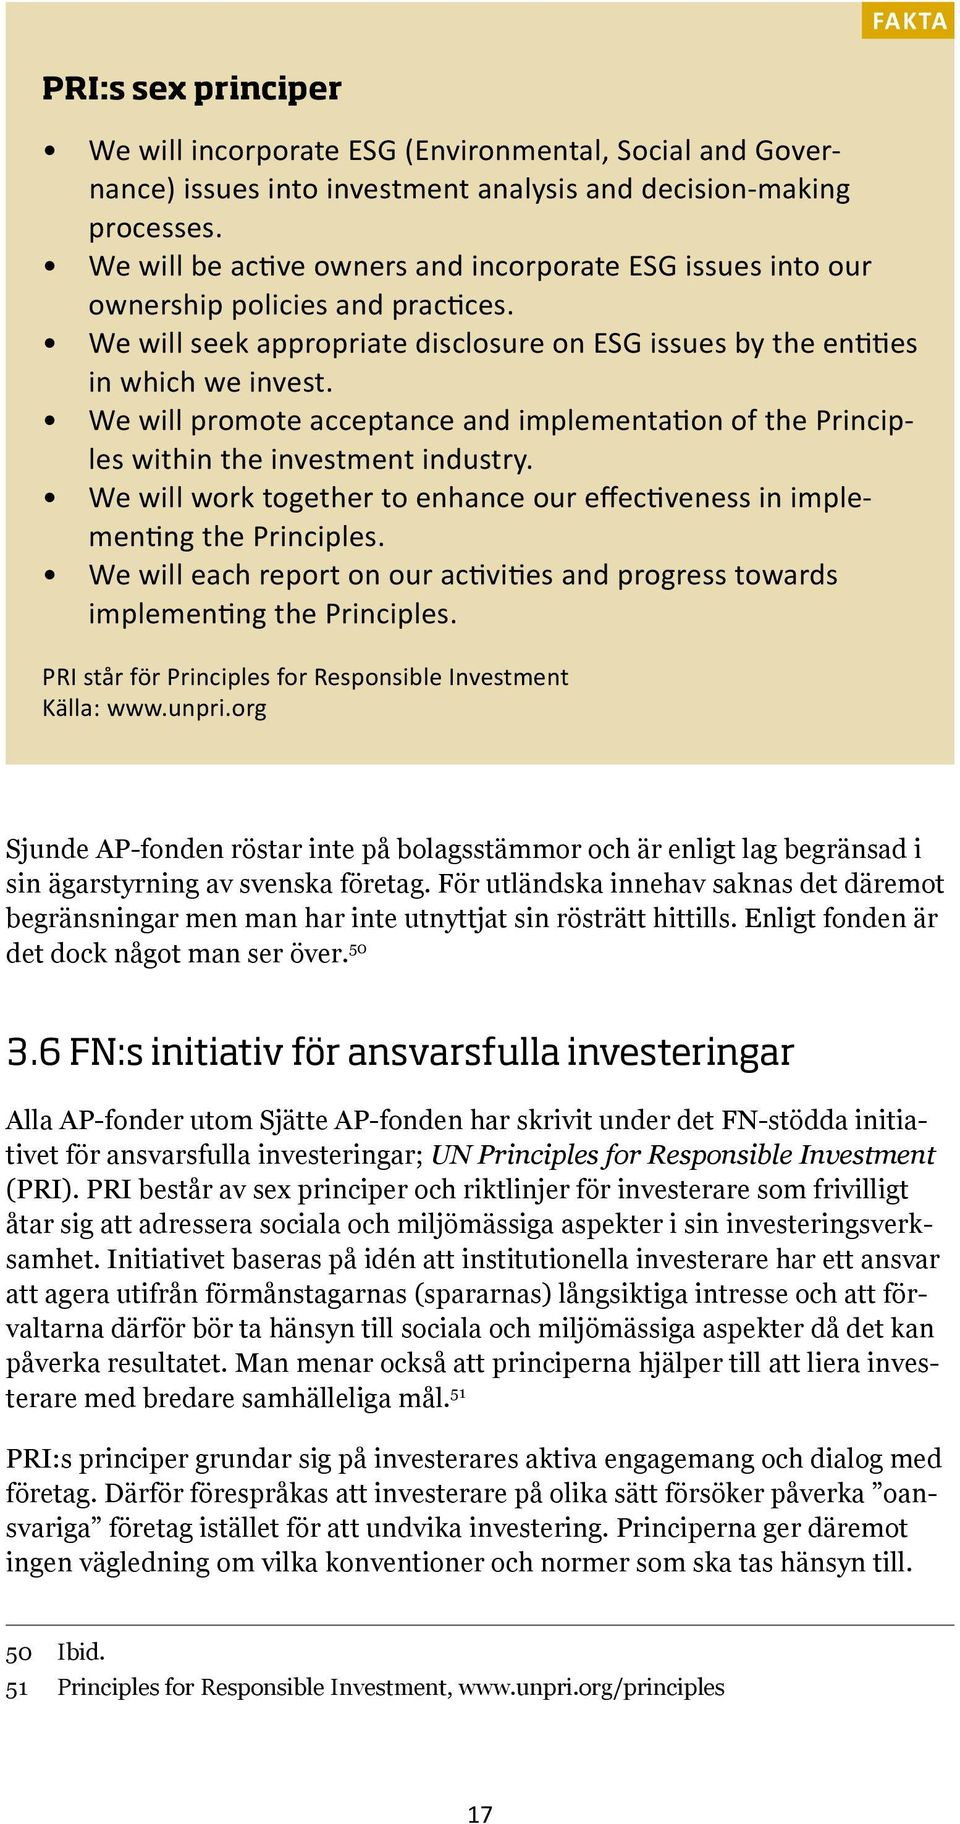 We will promote acceptance and implementation of the Principles within the investment industry. We will work together to enhance our effectiveness in implementing the Principles.